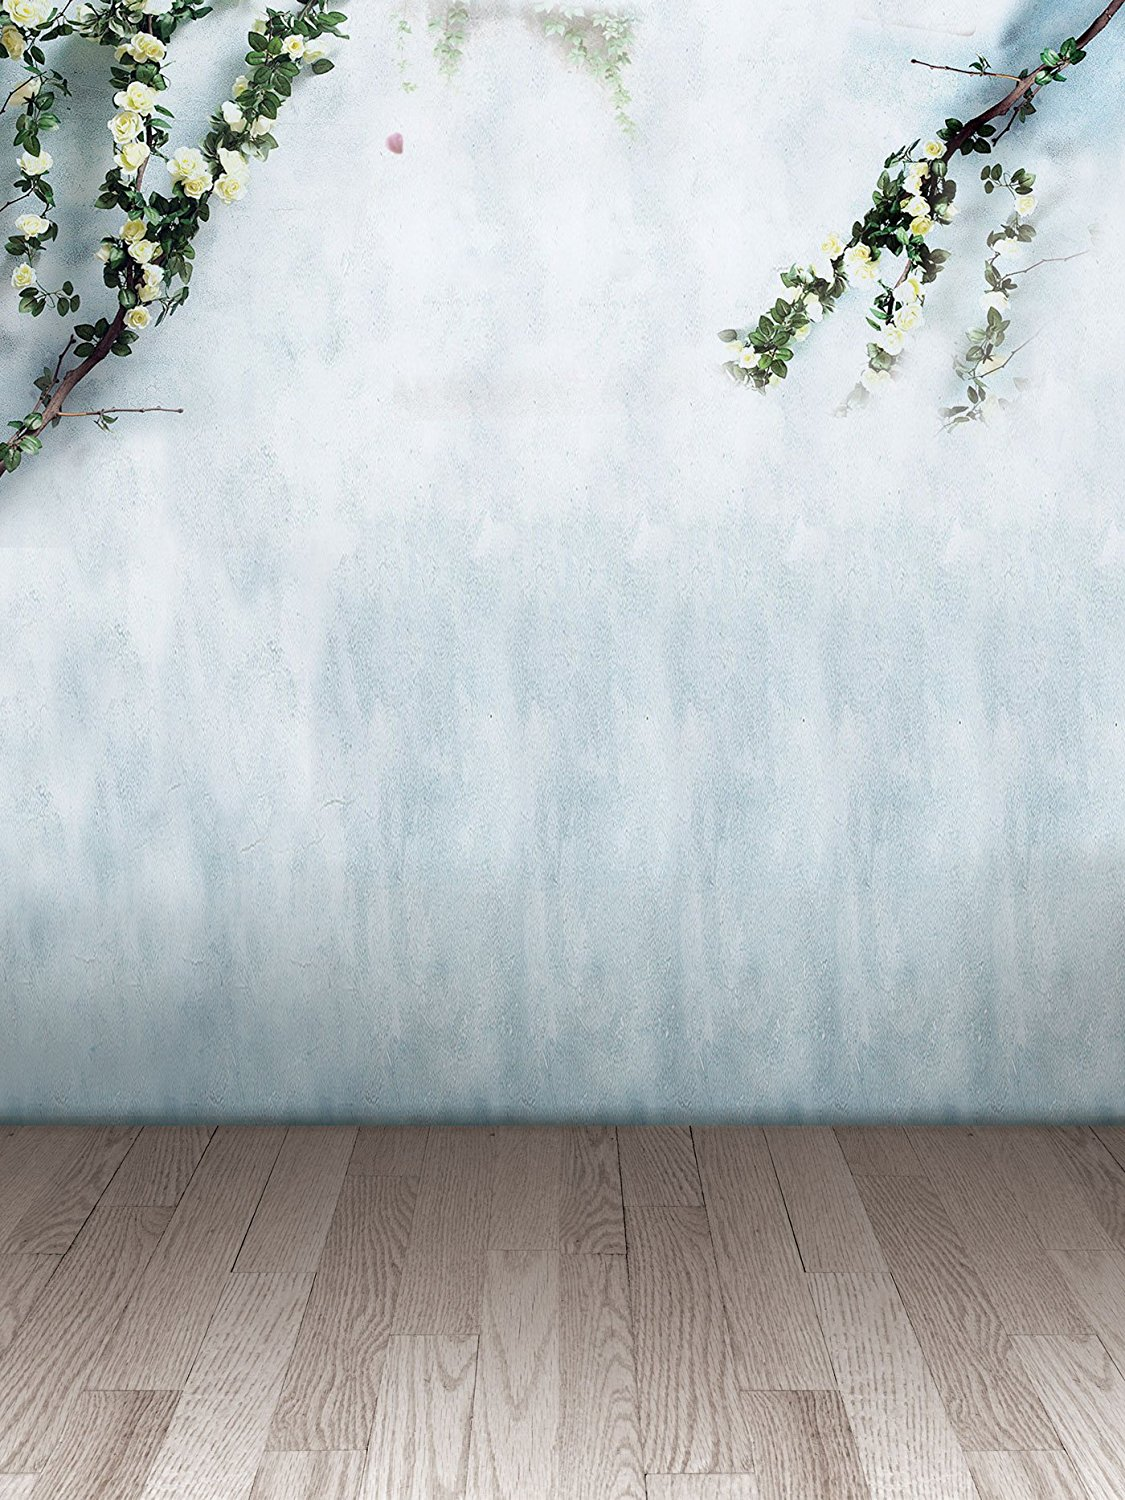 Hellodecor Polyester Fabric 5x7ft Photo Background Drop White Flowers Background Backdrop Wood Floor Photo Backdrop Light Blue Marble Wall Walmart Com Walmart Com